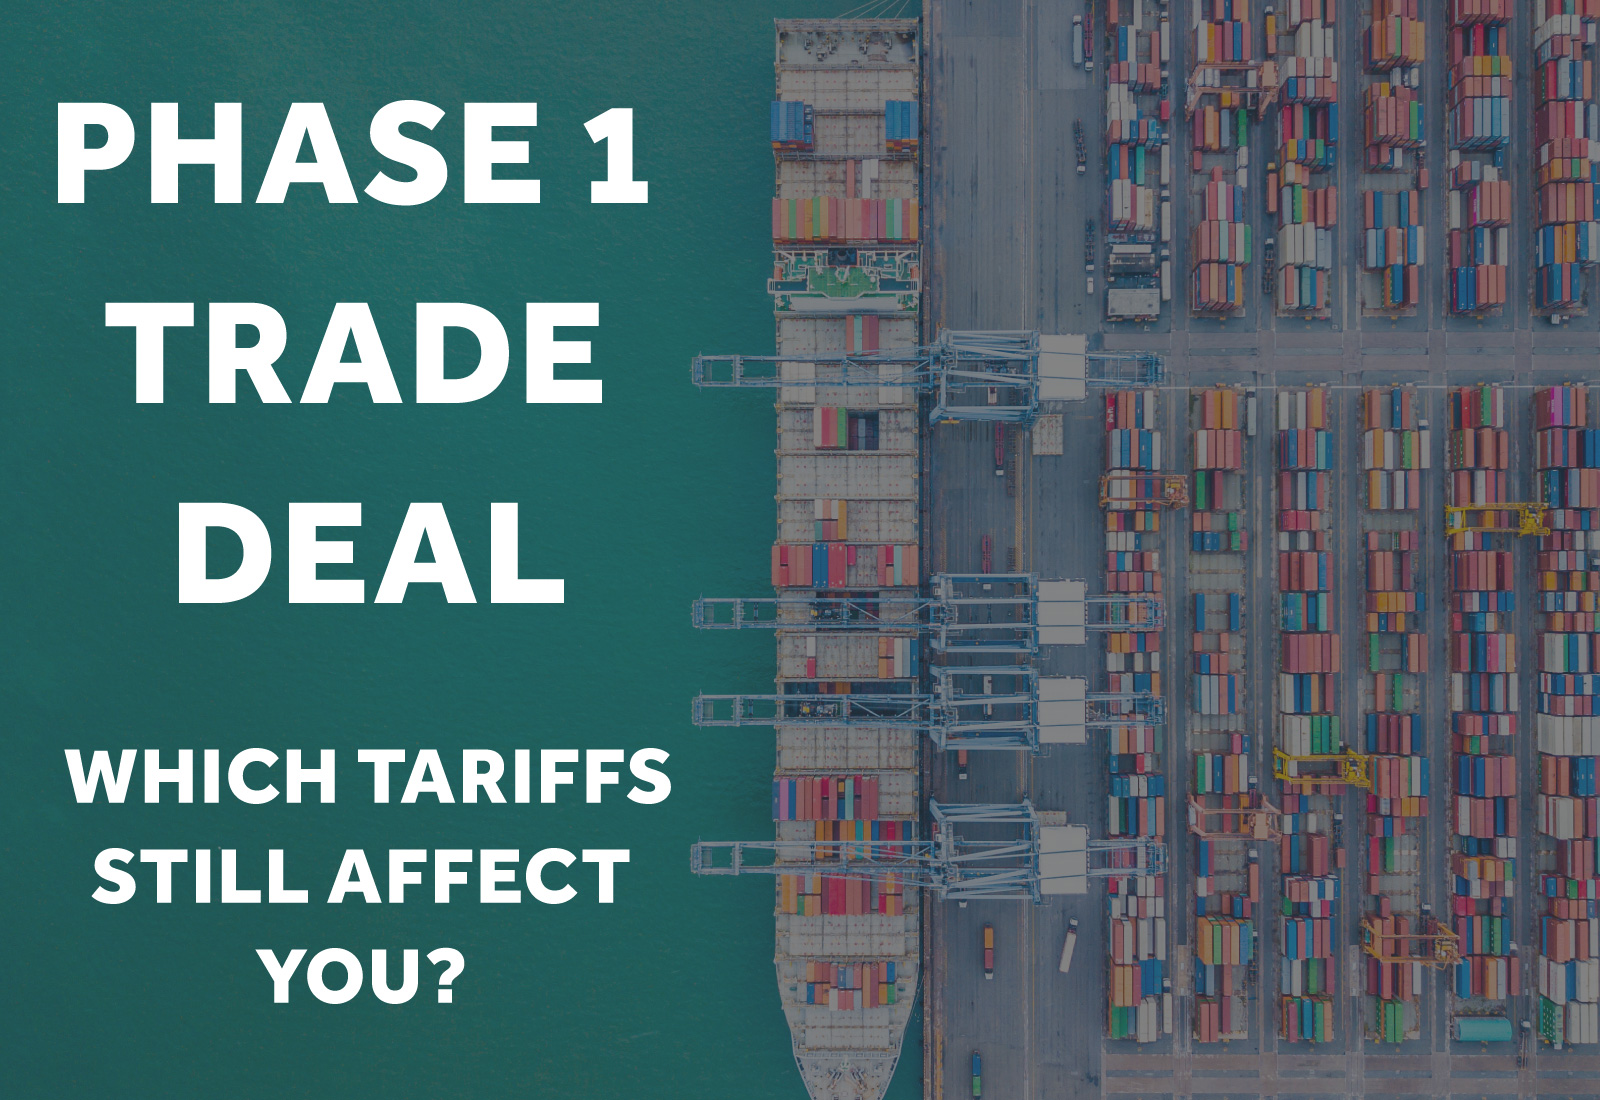 which tariffs still affect you?